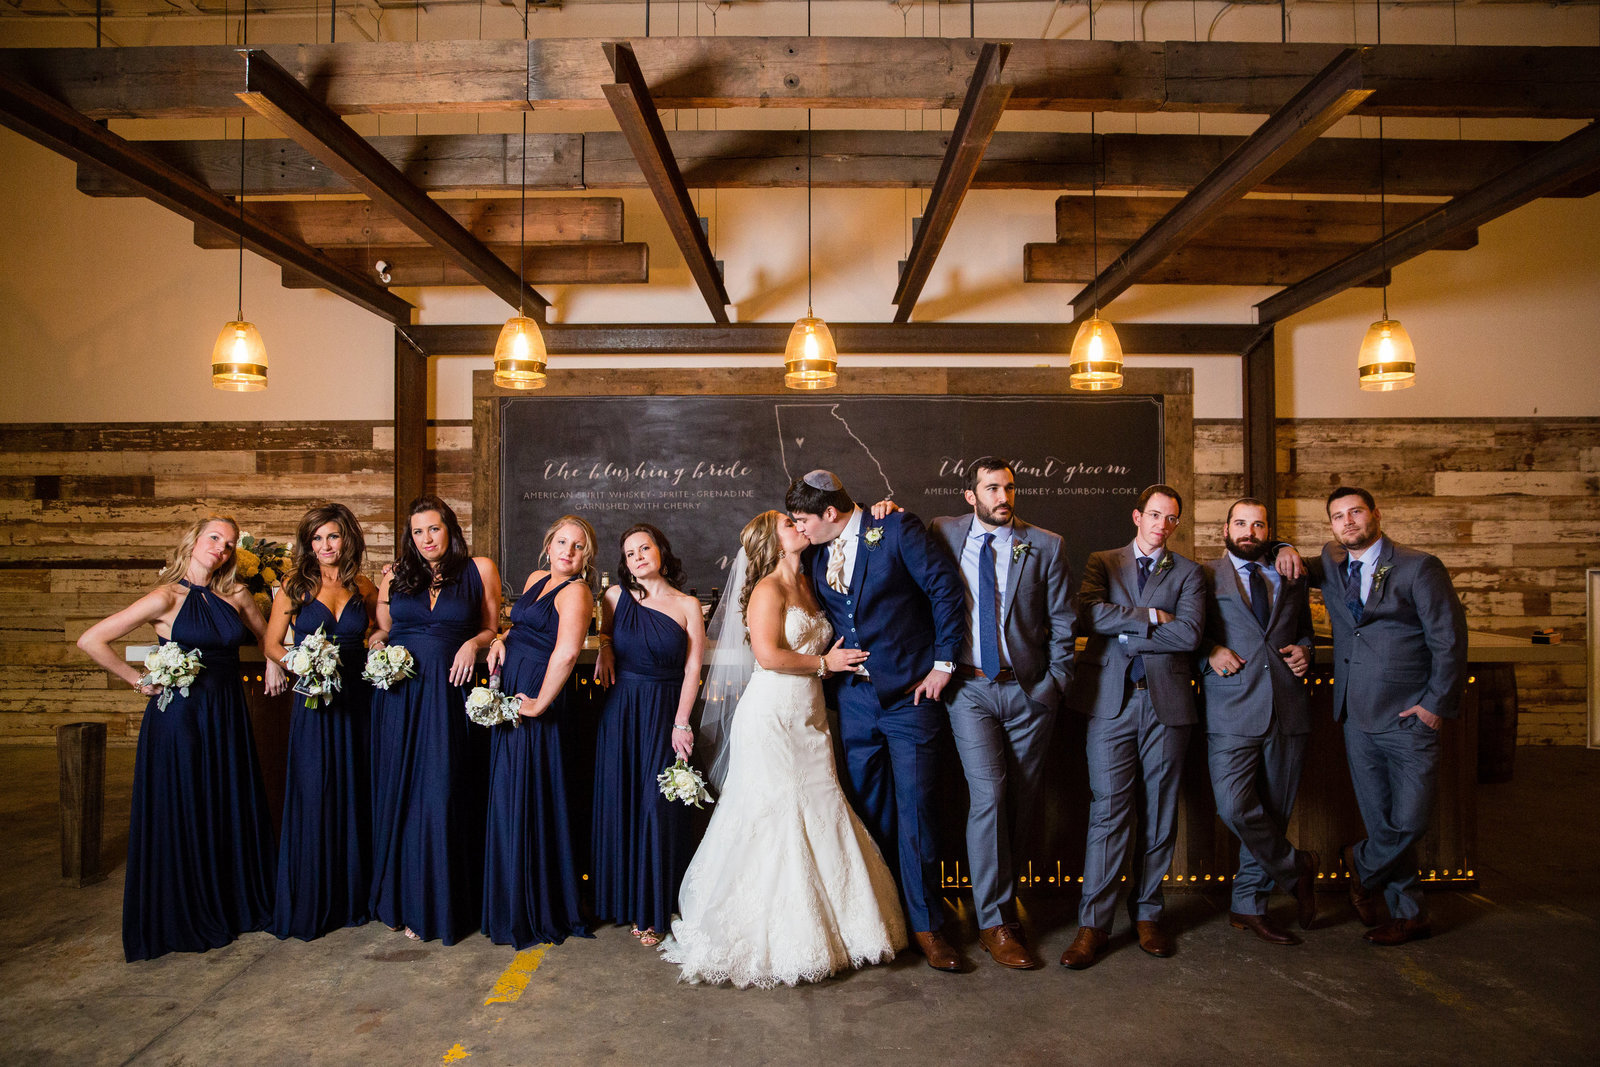 the-stave-room-american-spirit-works-wedding